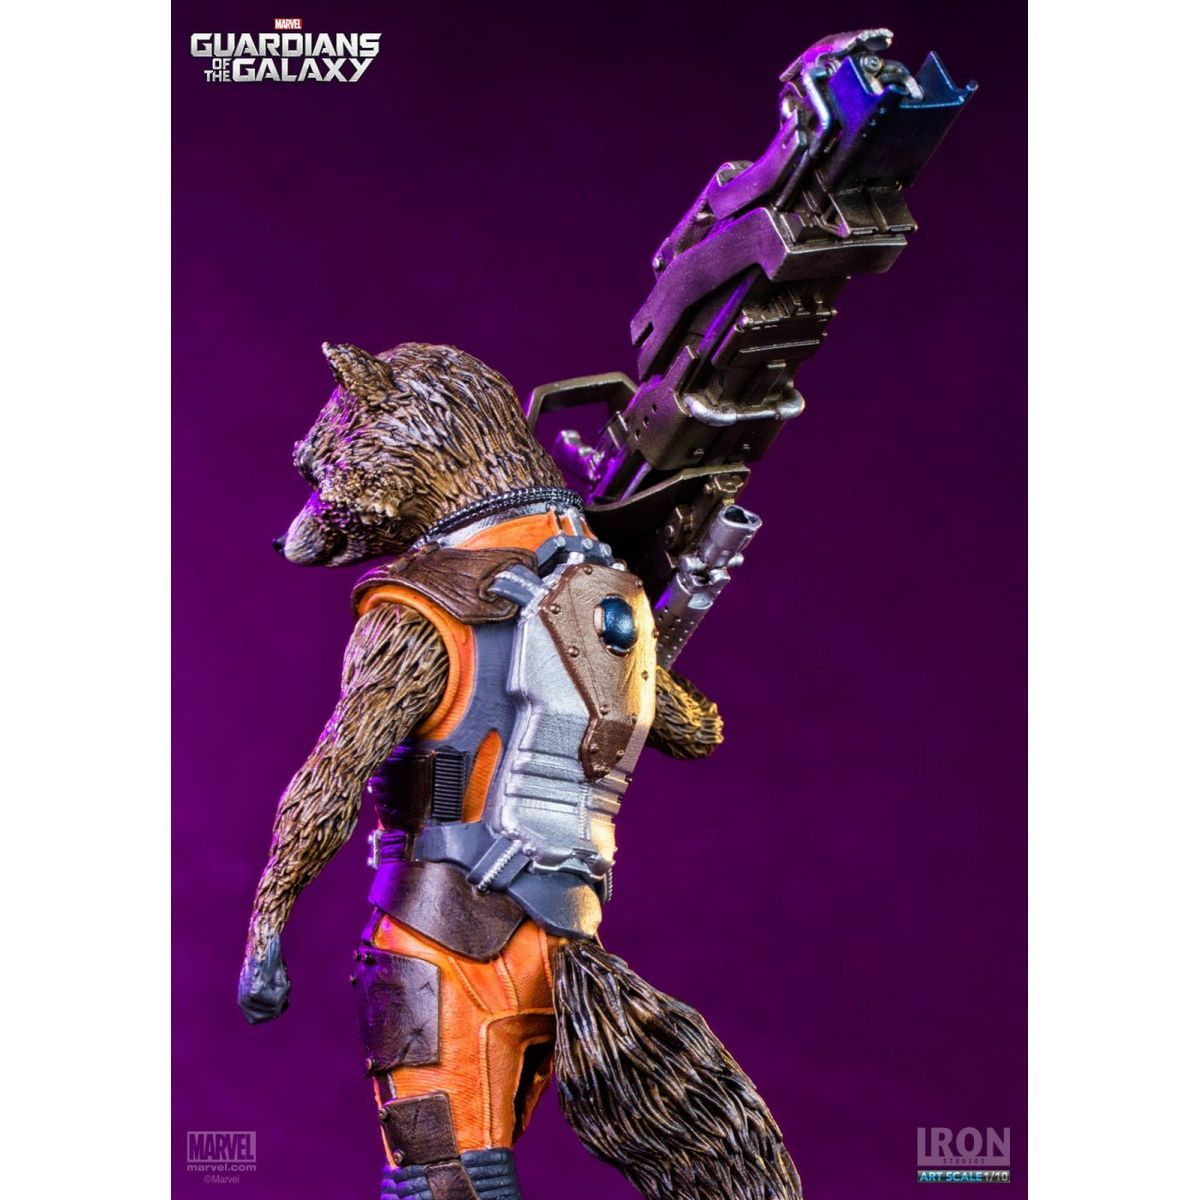 Estátua Rocket Raccoon: Guardiões da Galáxia Escala 1/10 - Iron Studios - CD